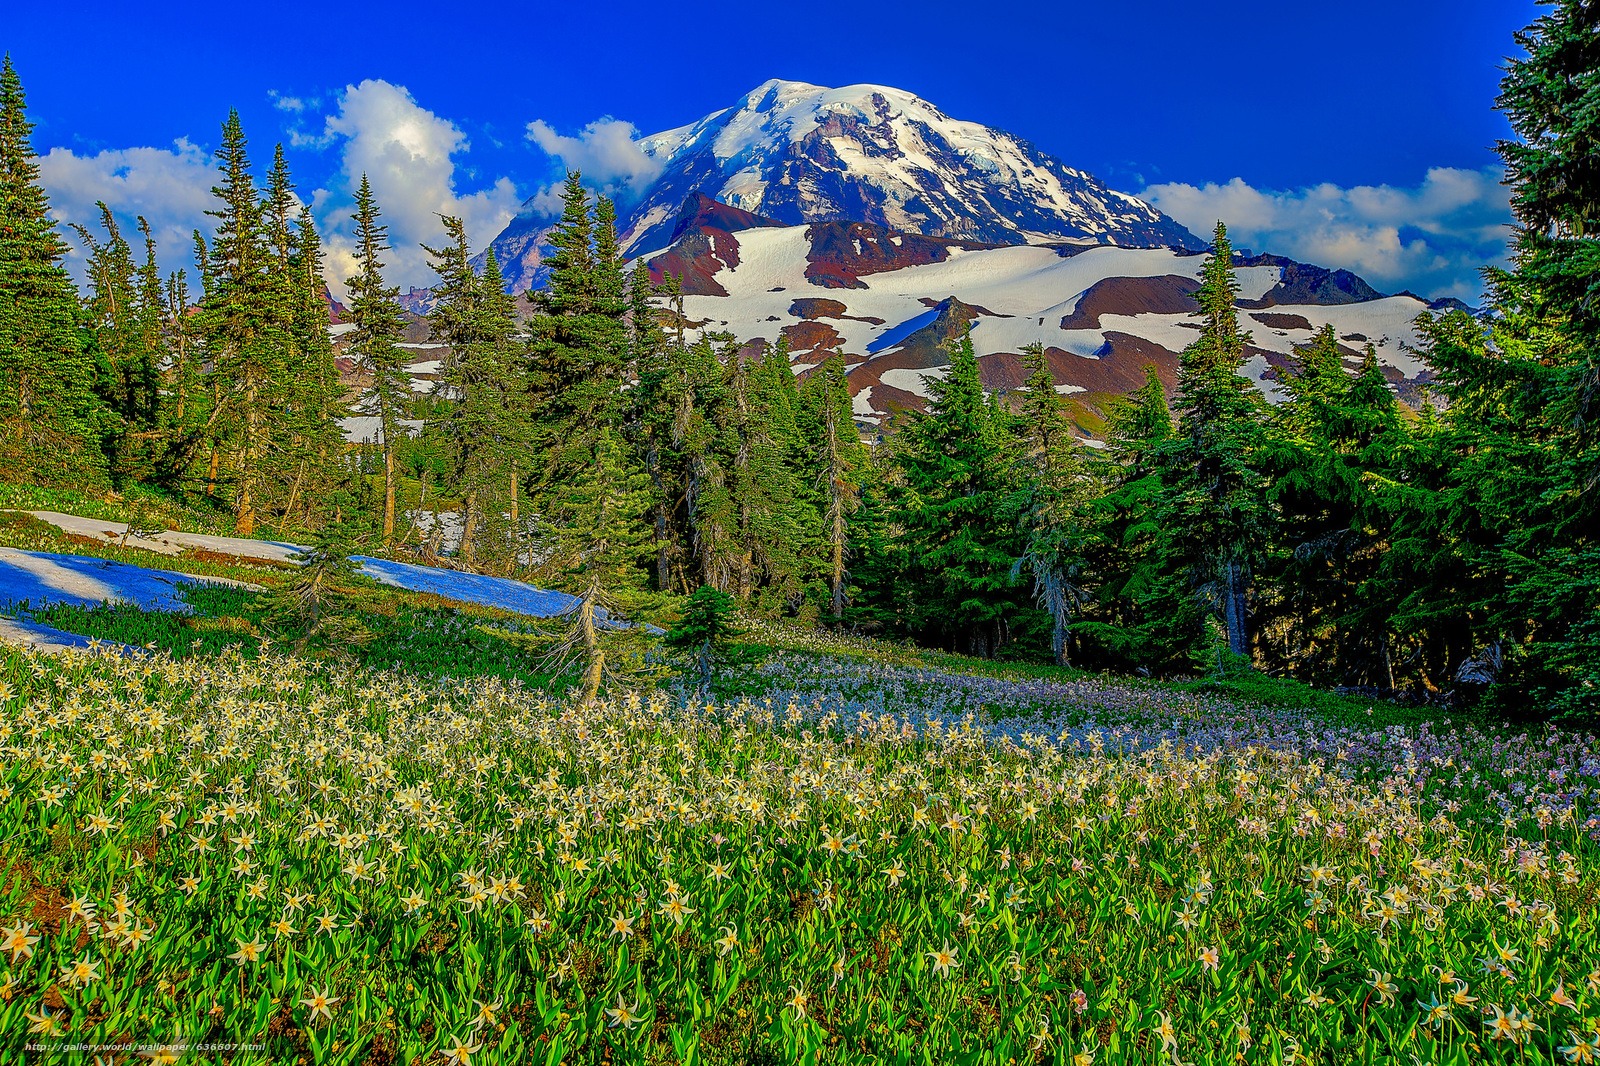 Download wallpaper Mount Rainier National Park US National Parks 1600x1066